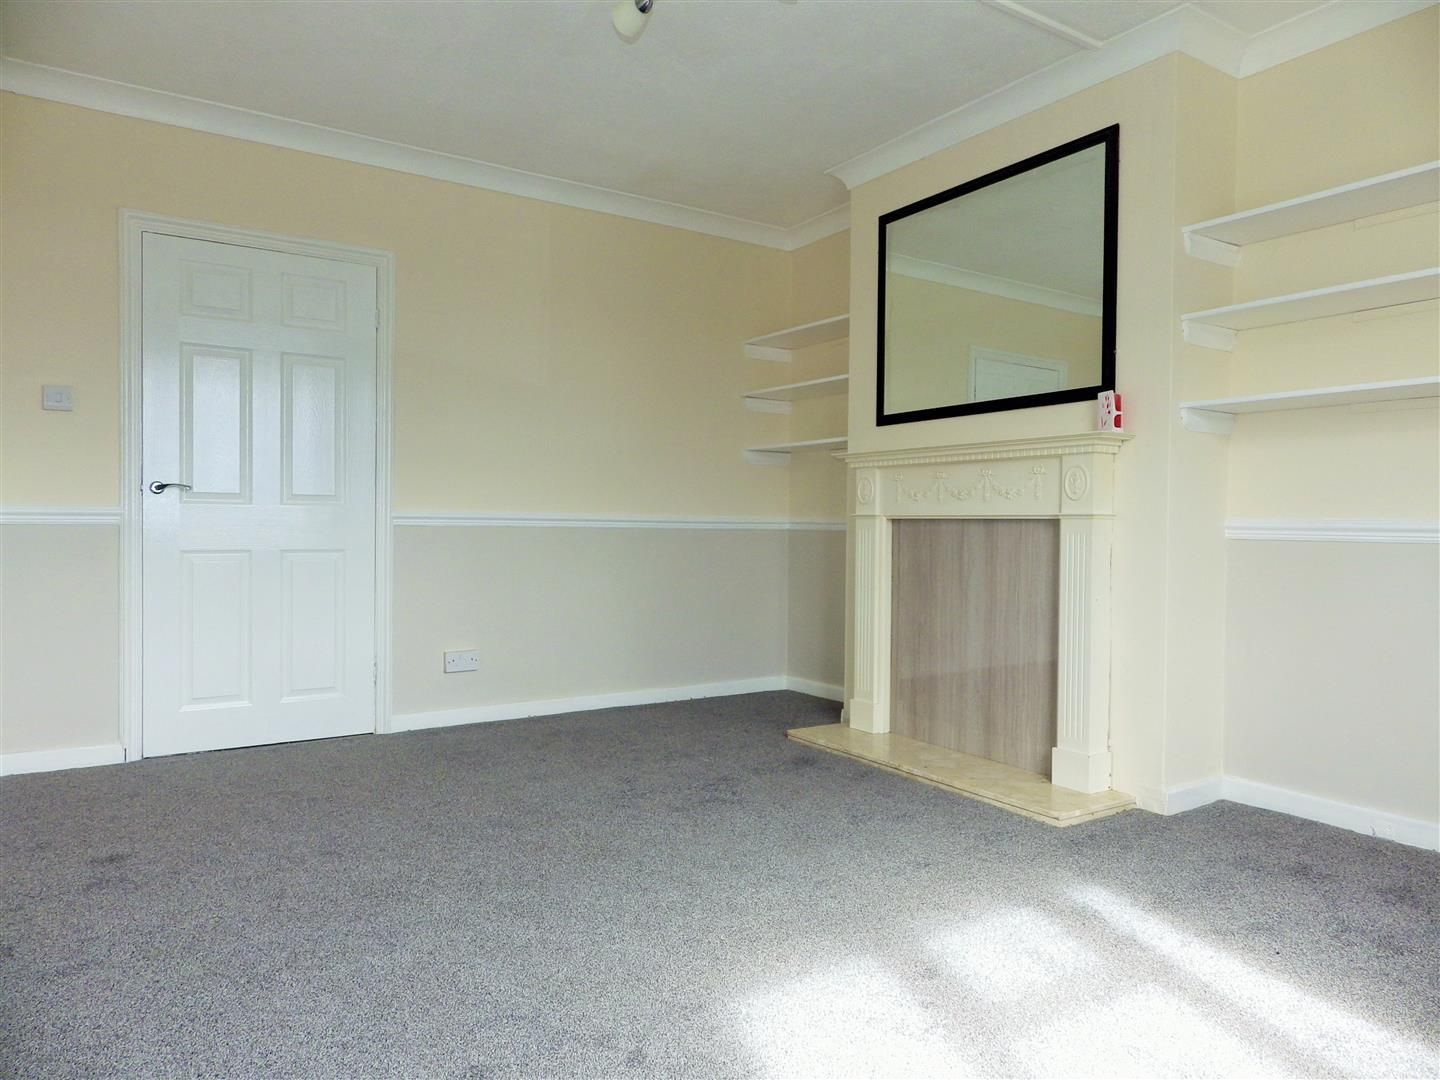 2 bed flat for sale  - Property Image 3